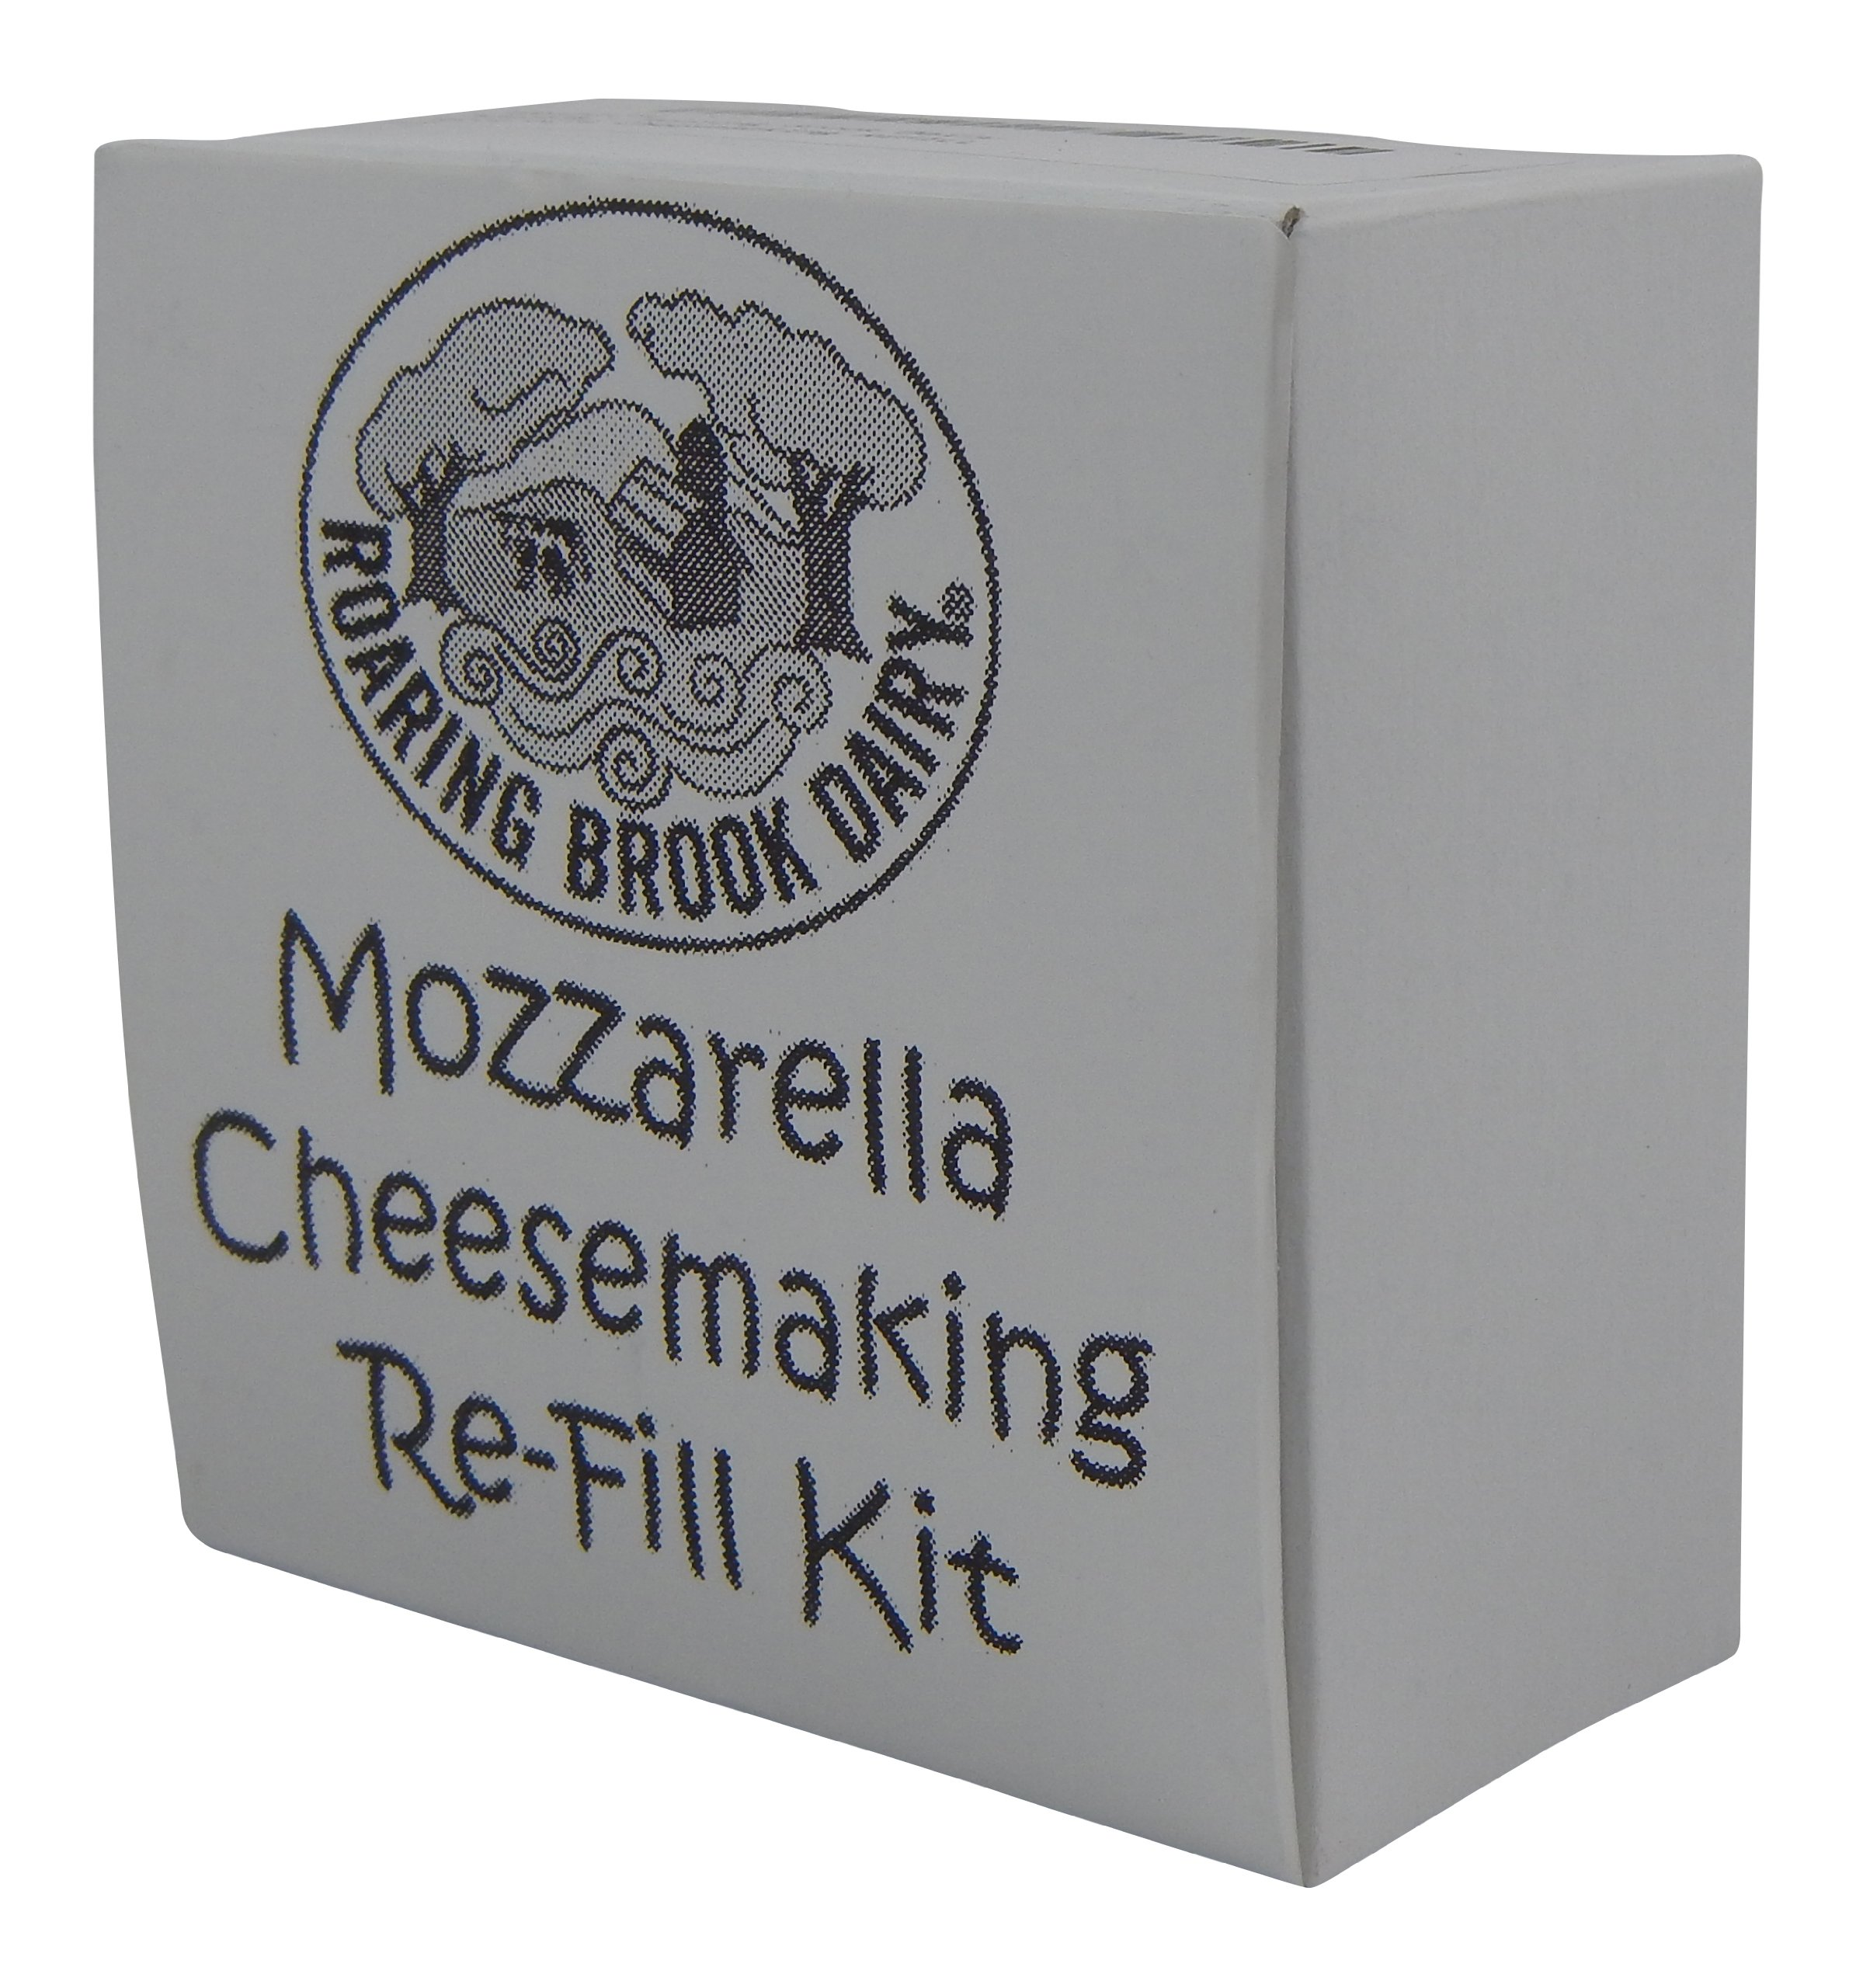 Roaring Brook Dairy Cheesemaking Kit (-) (Cheesemaking Refill Boxes)